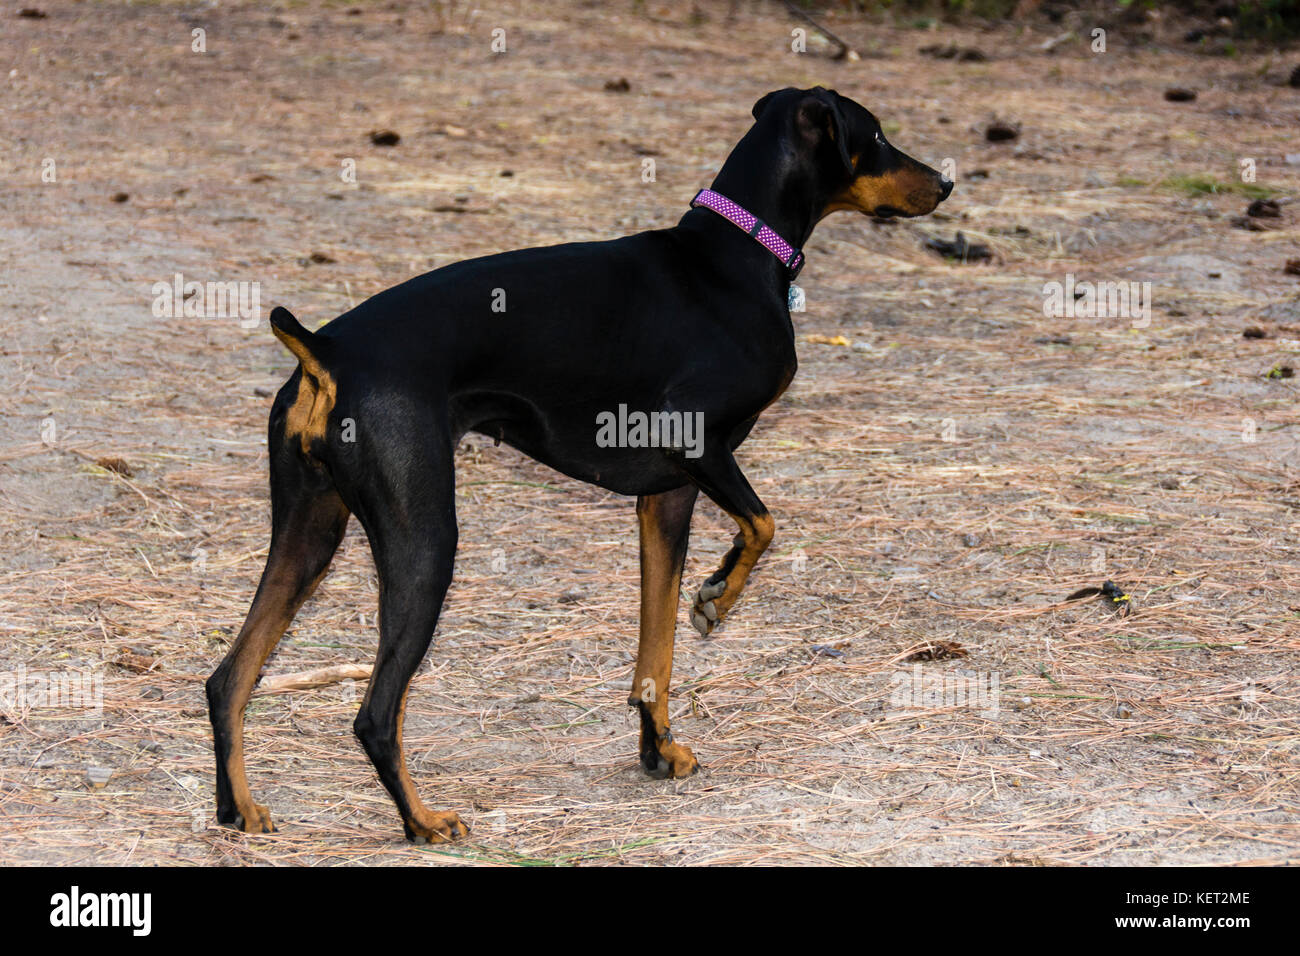 Doberman Pinscher dog in pointing hunting stance - Stock Image